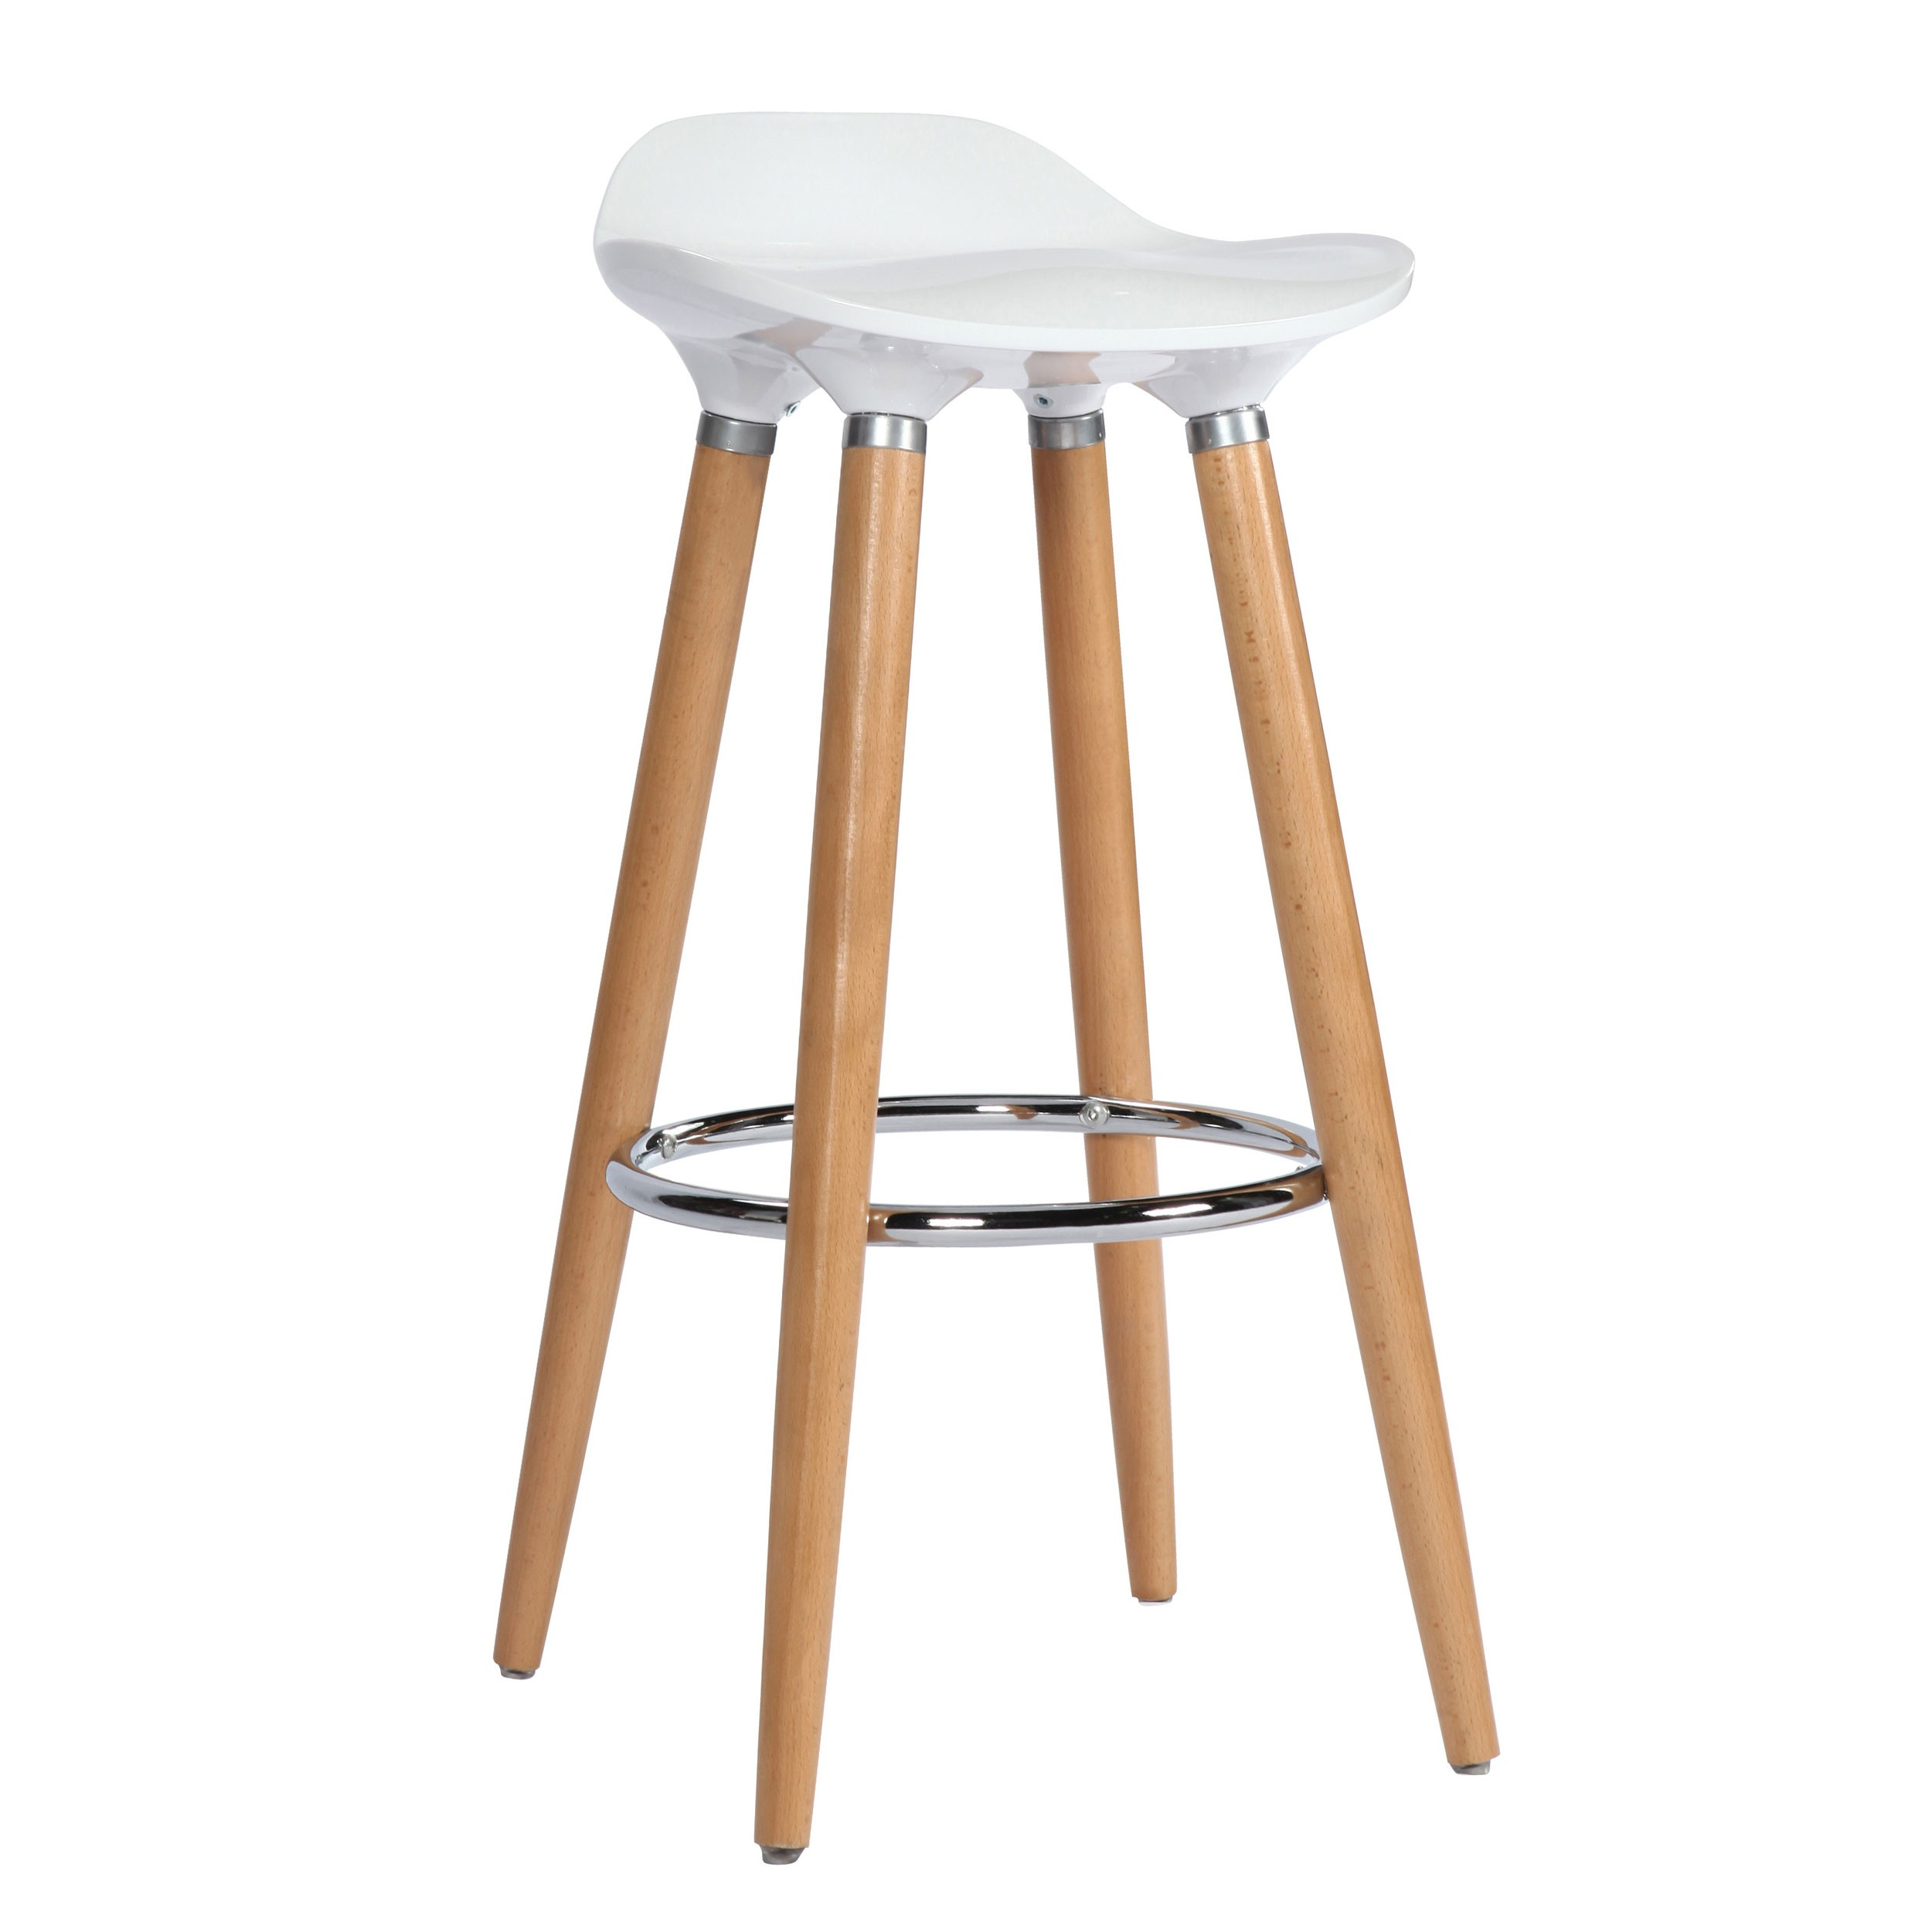 tabouret de bar italien blanc achetez nos tabourets de bar italiens blancs rdv d co. Black Bedroom Furniture Sets. Home Design Ideas